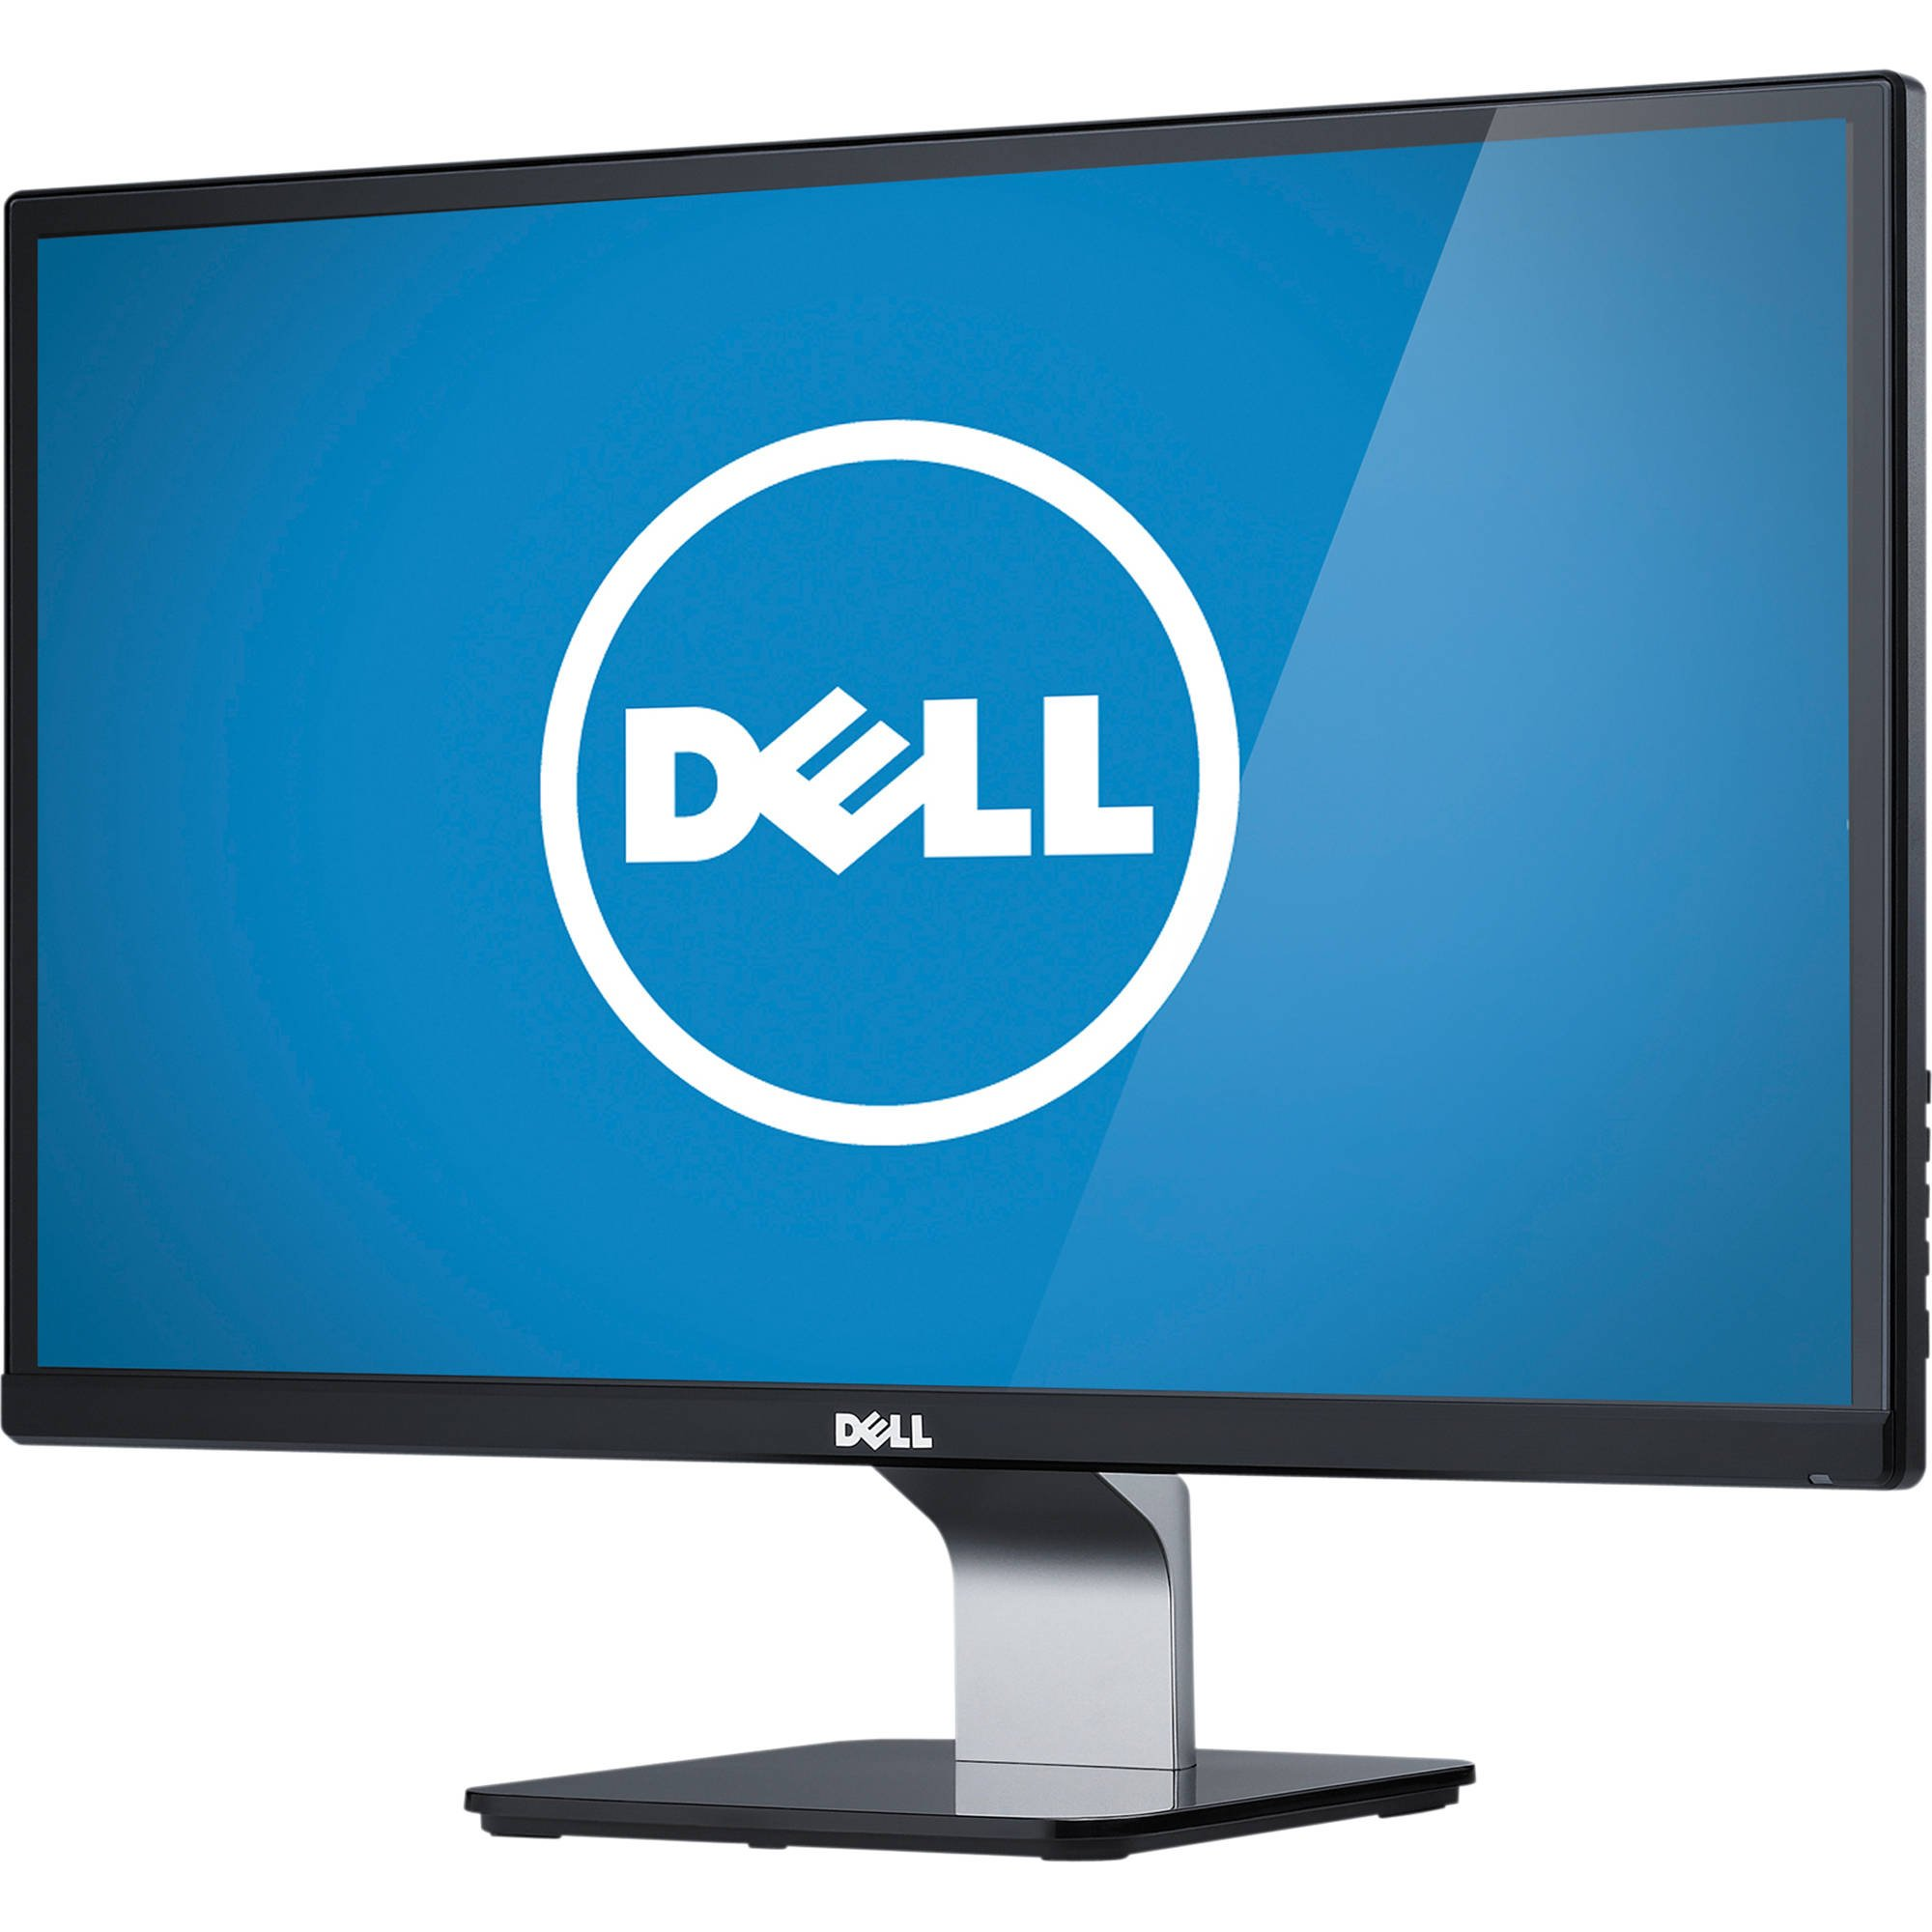 how to download pdf attachment on pc dell